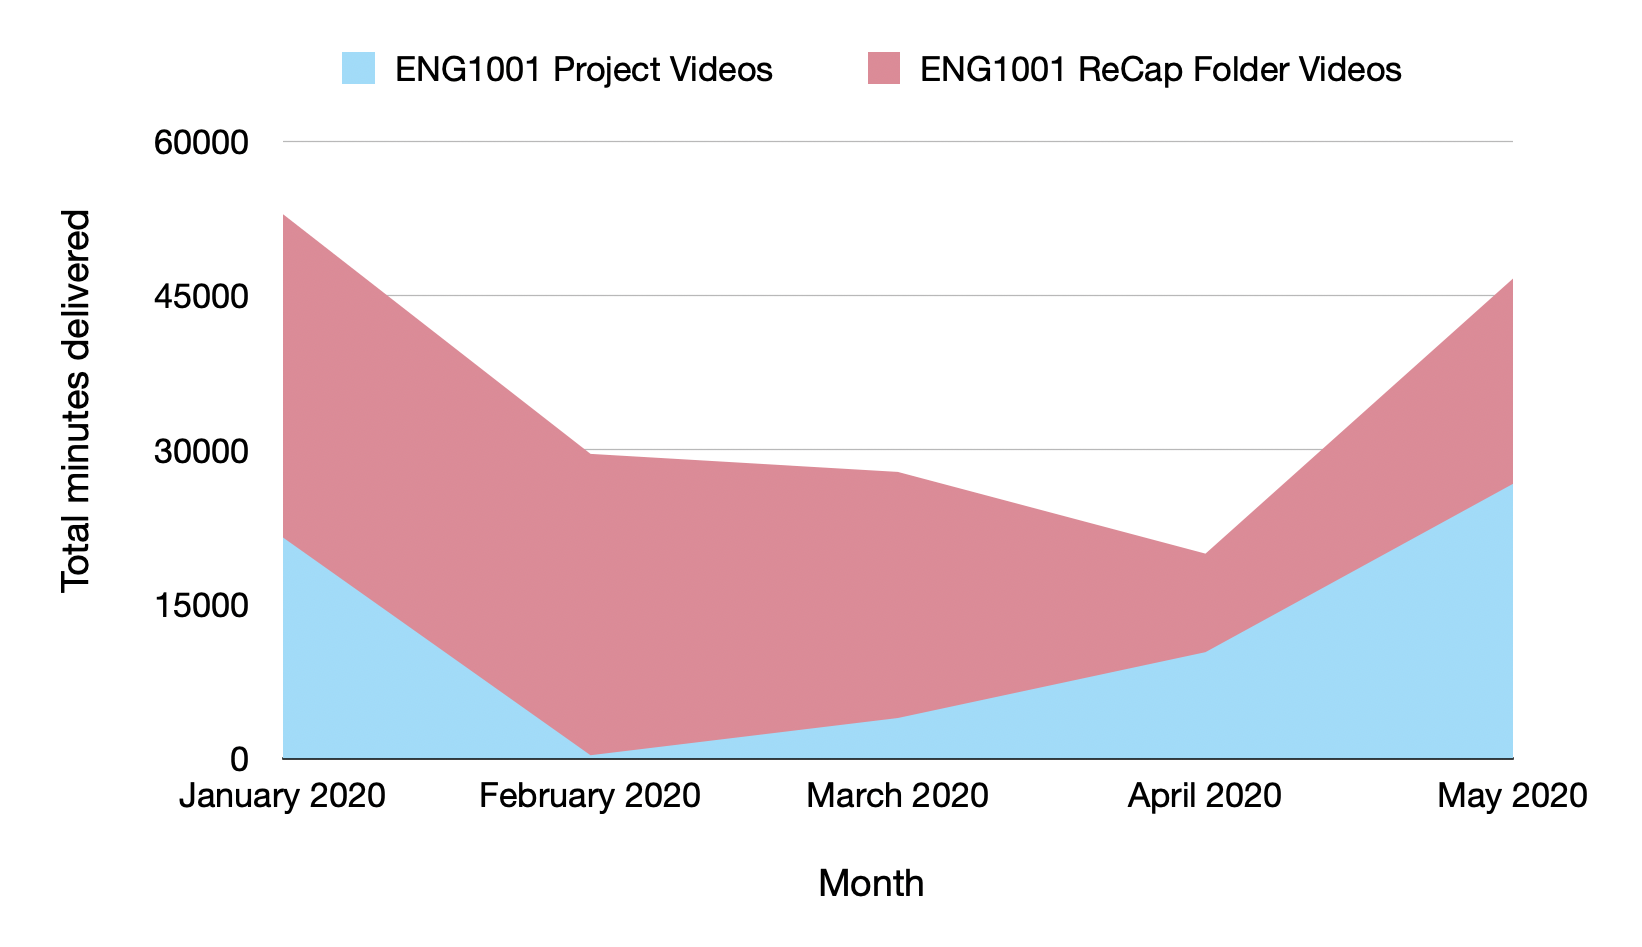 Graph showing a peak in the number of video minutes delivered in January 2020 followed by a decline and then a further increase in May 2020. The ReCap folder videos had more minutes viewed than the project videos in ENG1001